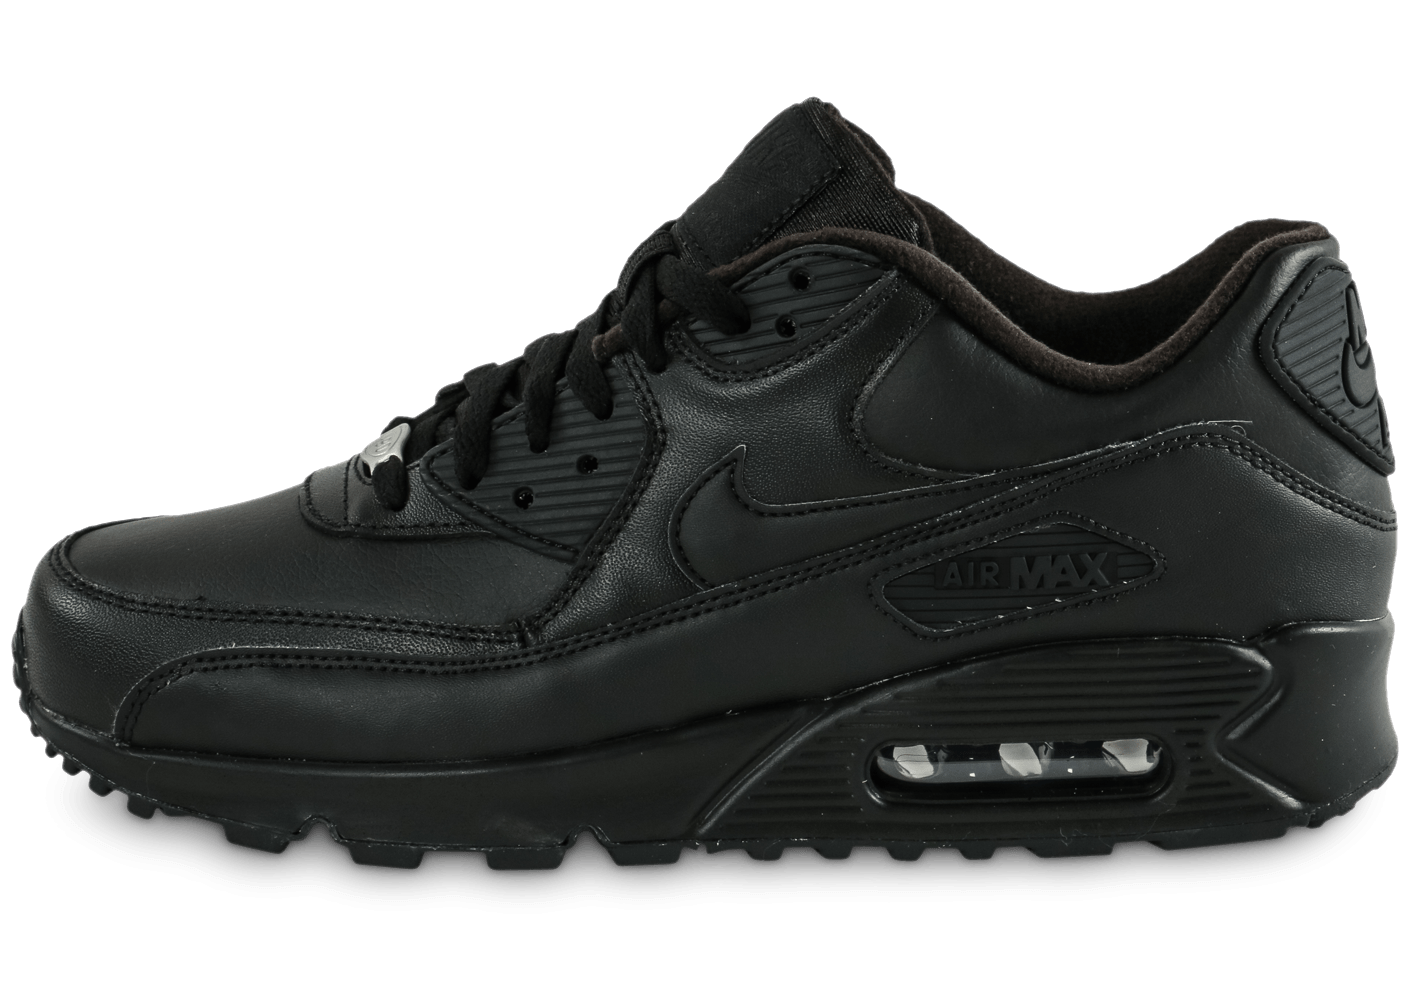 nike air max 90 leather noire chaussures homme chausport. Black Bedroom Furniture Sets. Home Design Ideas